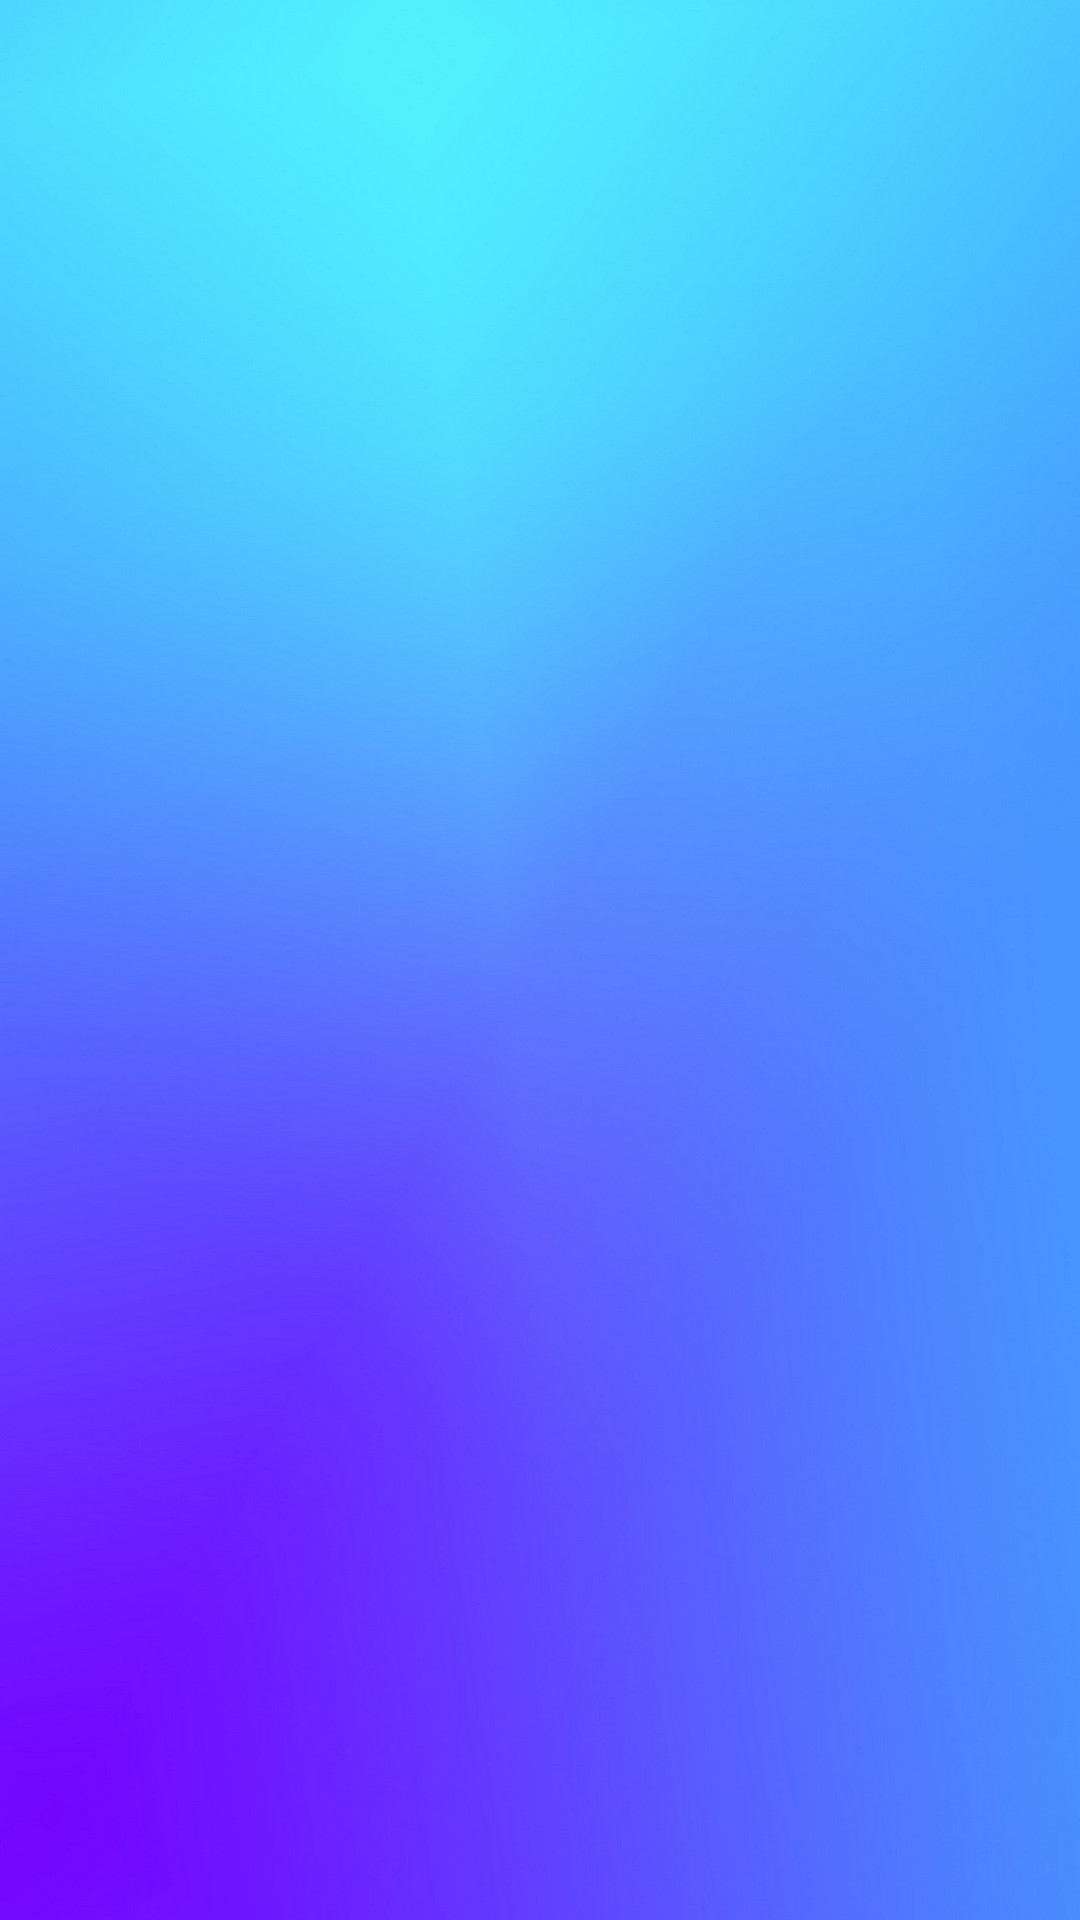 Wallpapers Iphone Gradient With High-resolution Pixel - Blue Gradient Iphone Background - HD Wallpaper